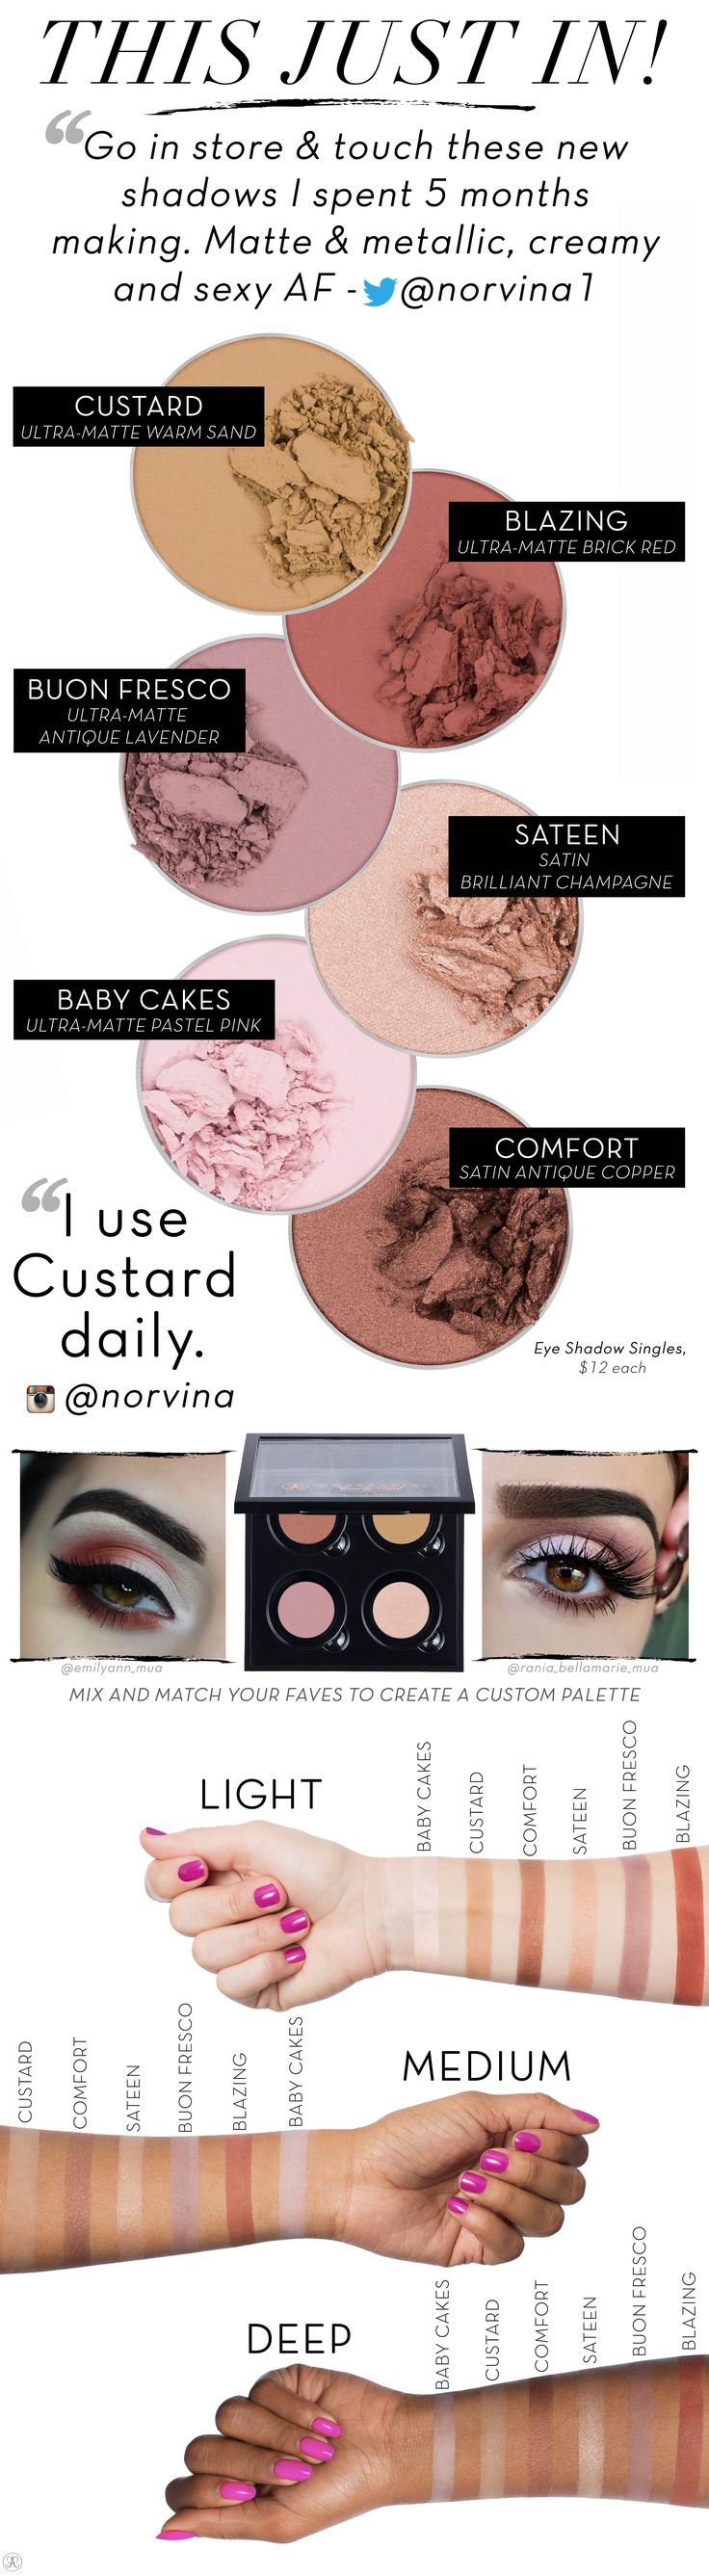 Beyond the Brow | Official Blog of Anastasia Beverly Hills - Step into Spring with our New Eye Shadow Singles!